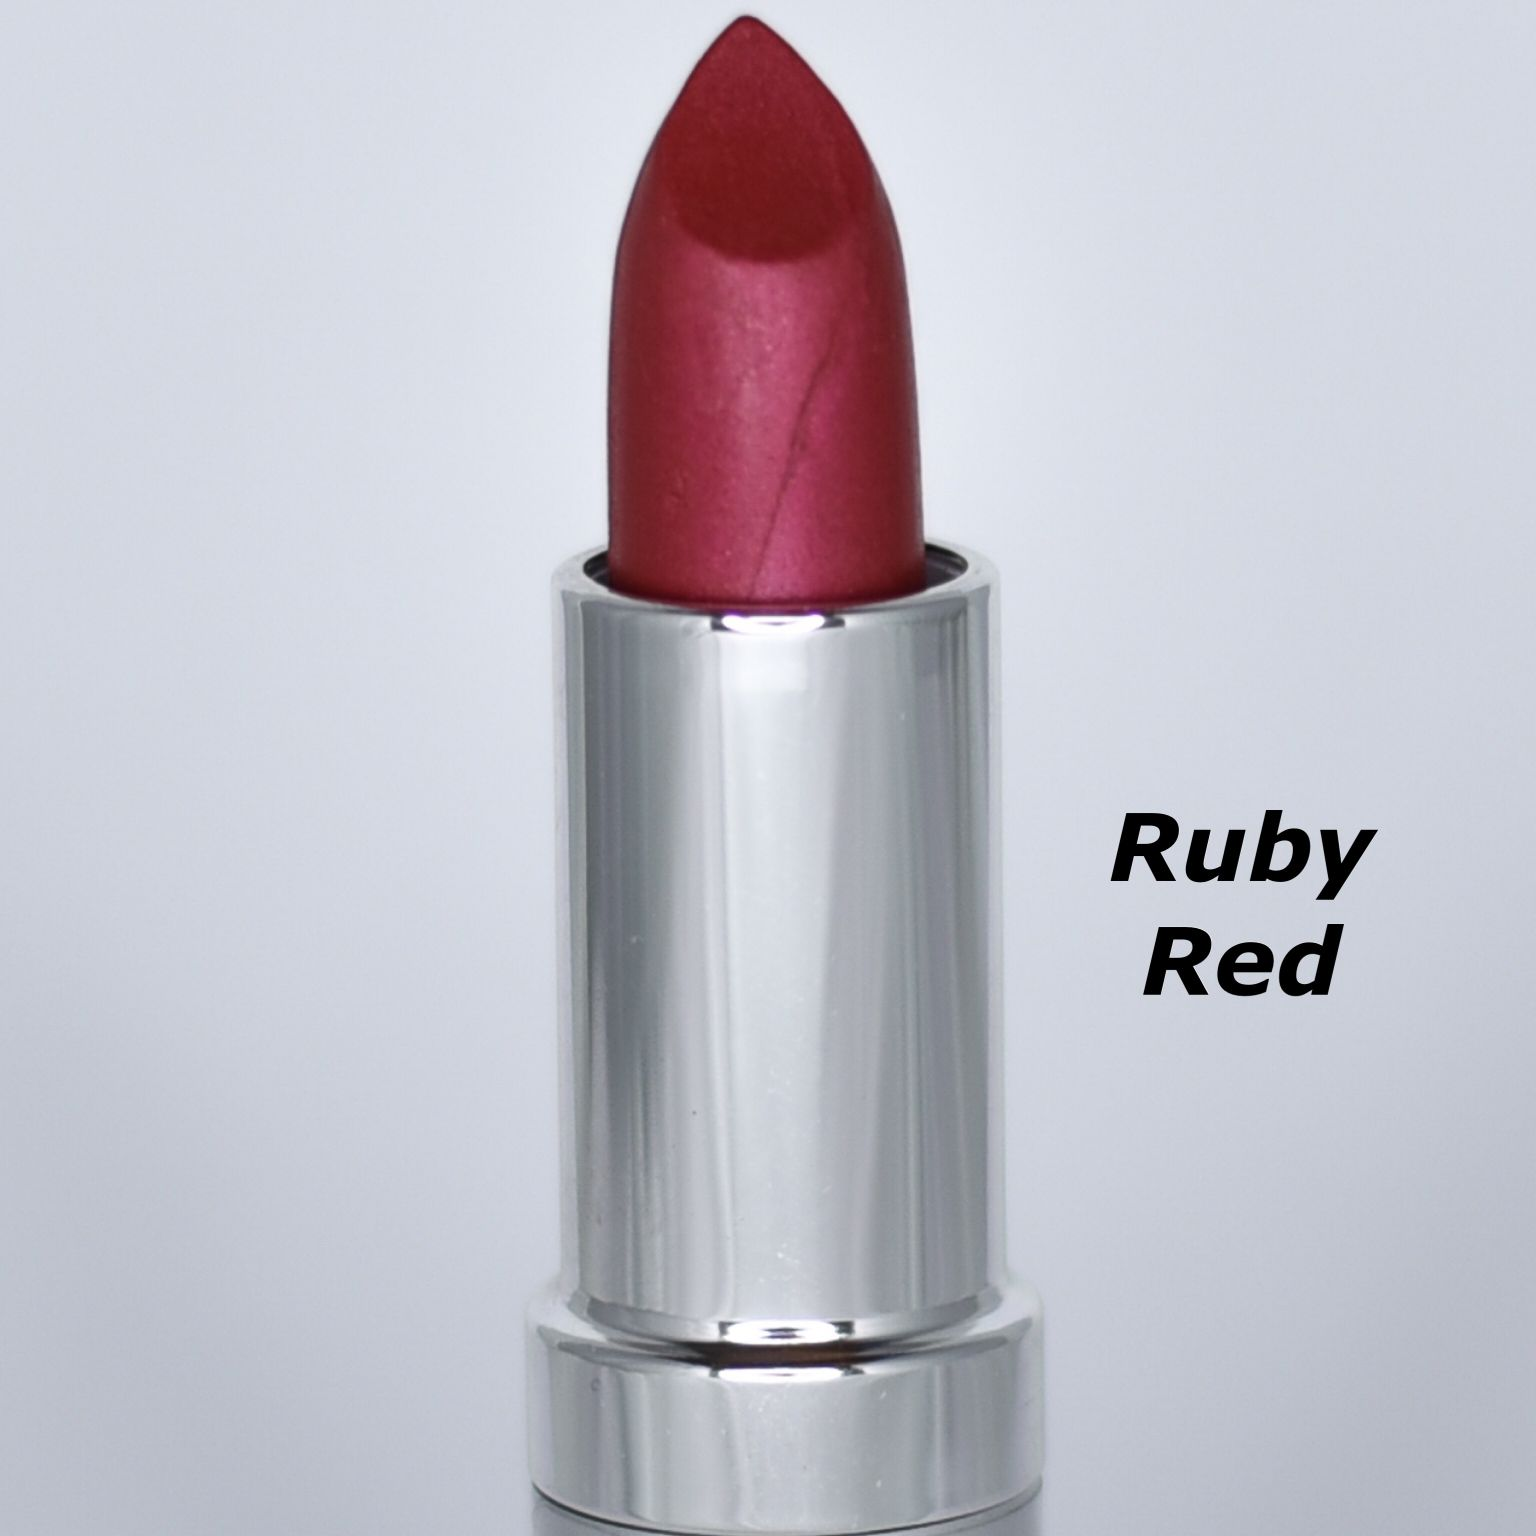 Ruby Red Lipstick